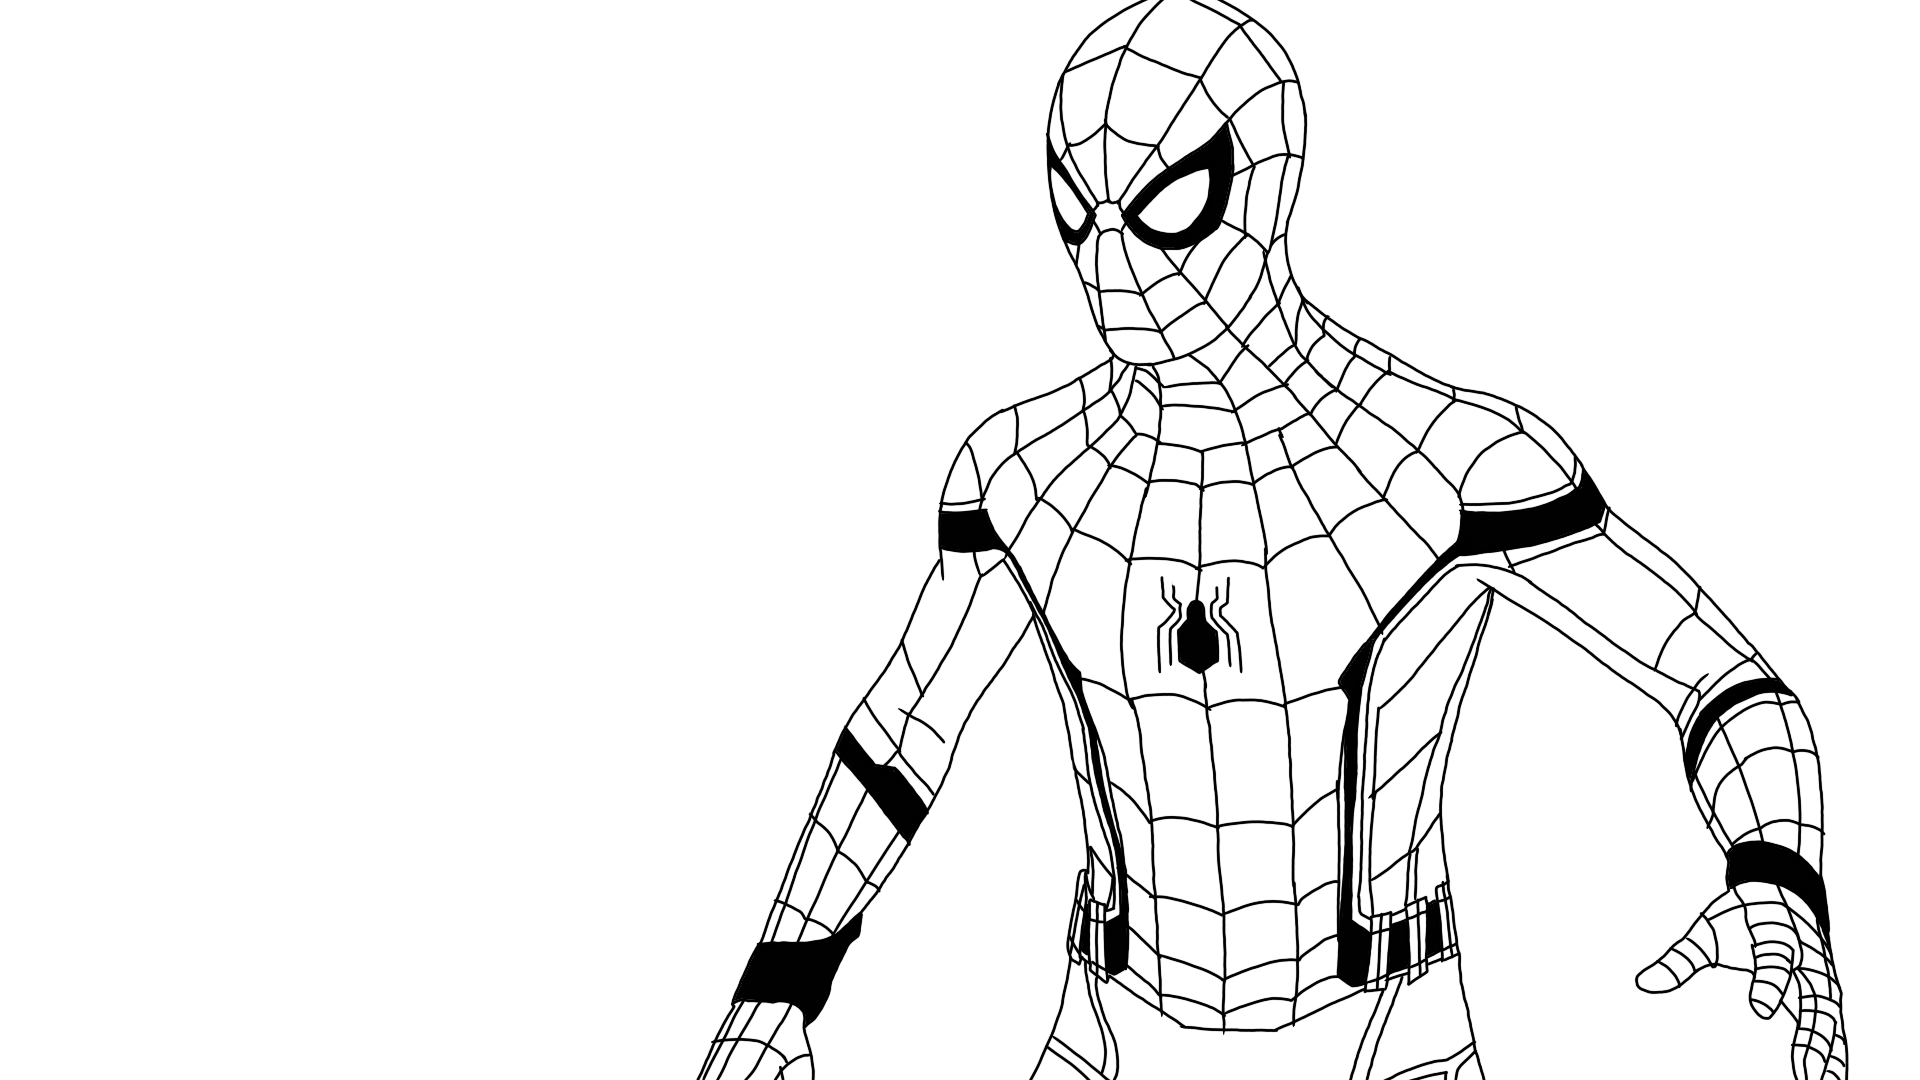 spiderman homecoming coloring 25 awesome image of spider man homecoming coloring pages homecoming spiderman coloring